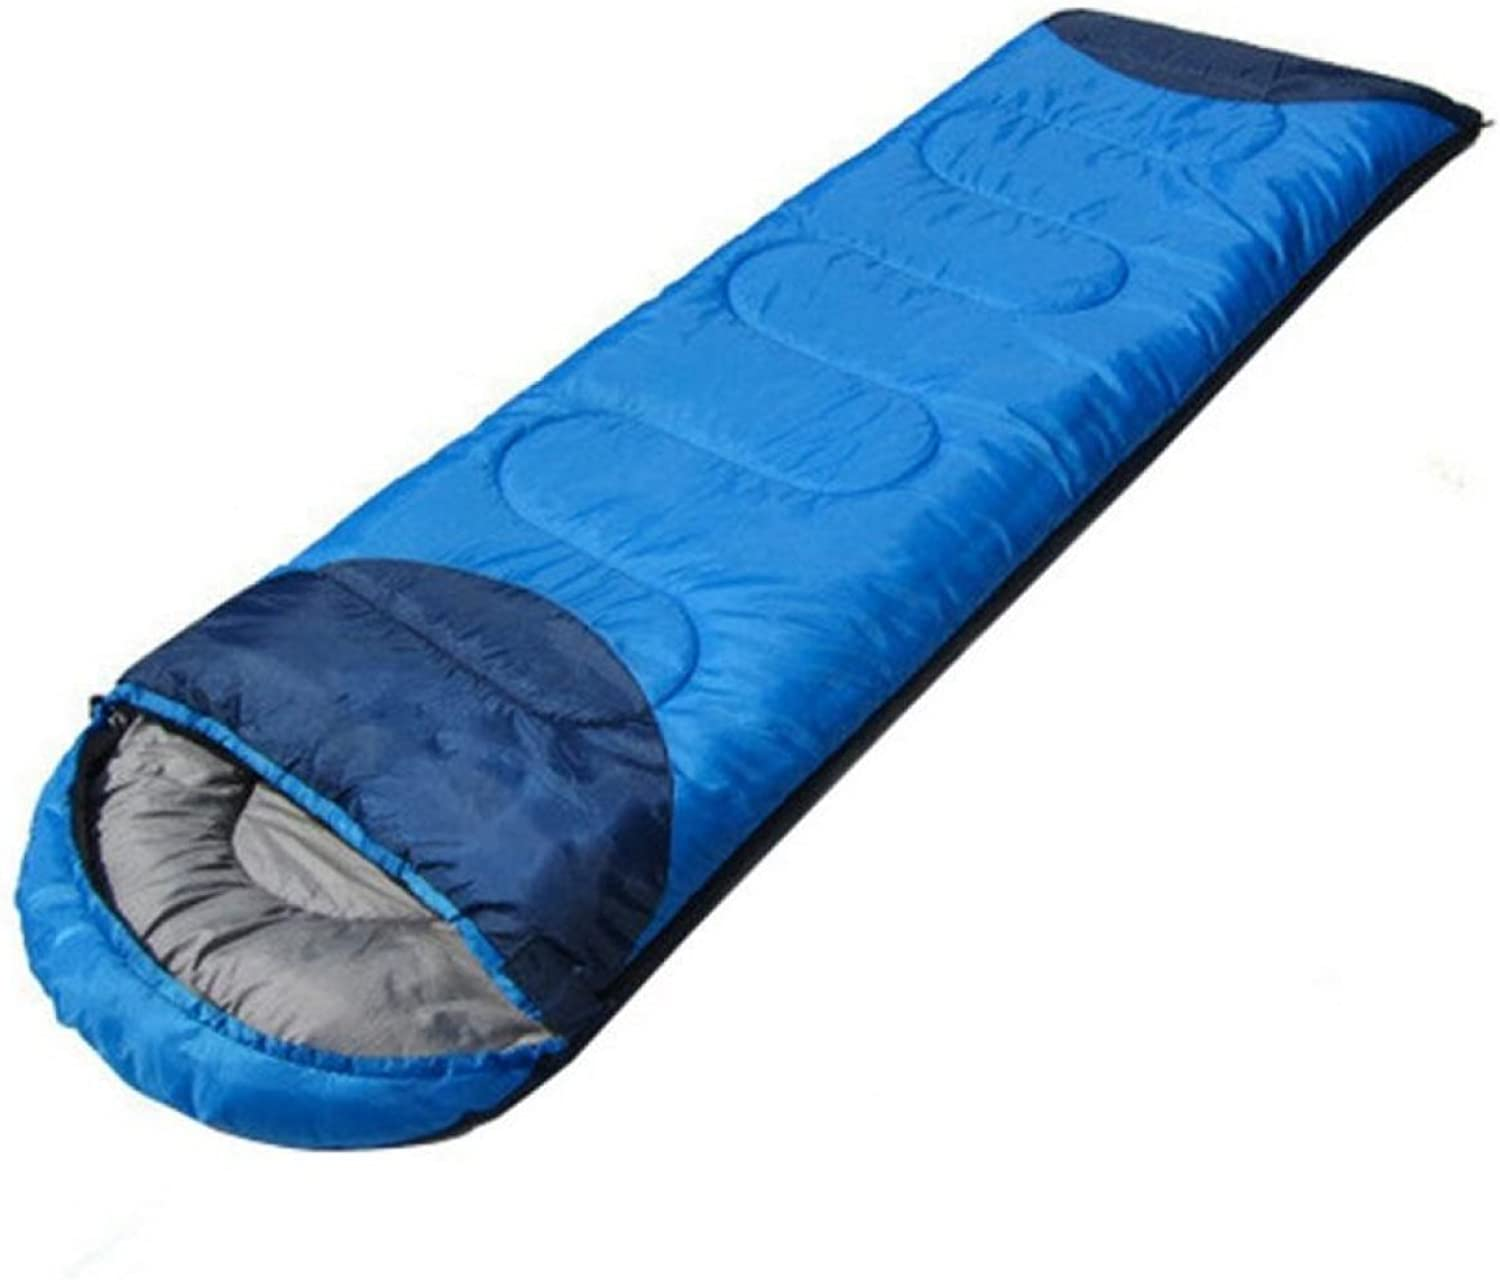 Wild Camping Sleeping Bags Can Be Stitched Ultra-light Portable Camping Lunch Break Envelopes Sleeping Bags,A2